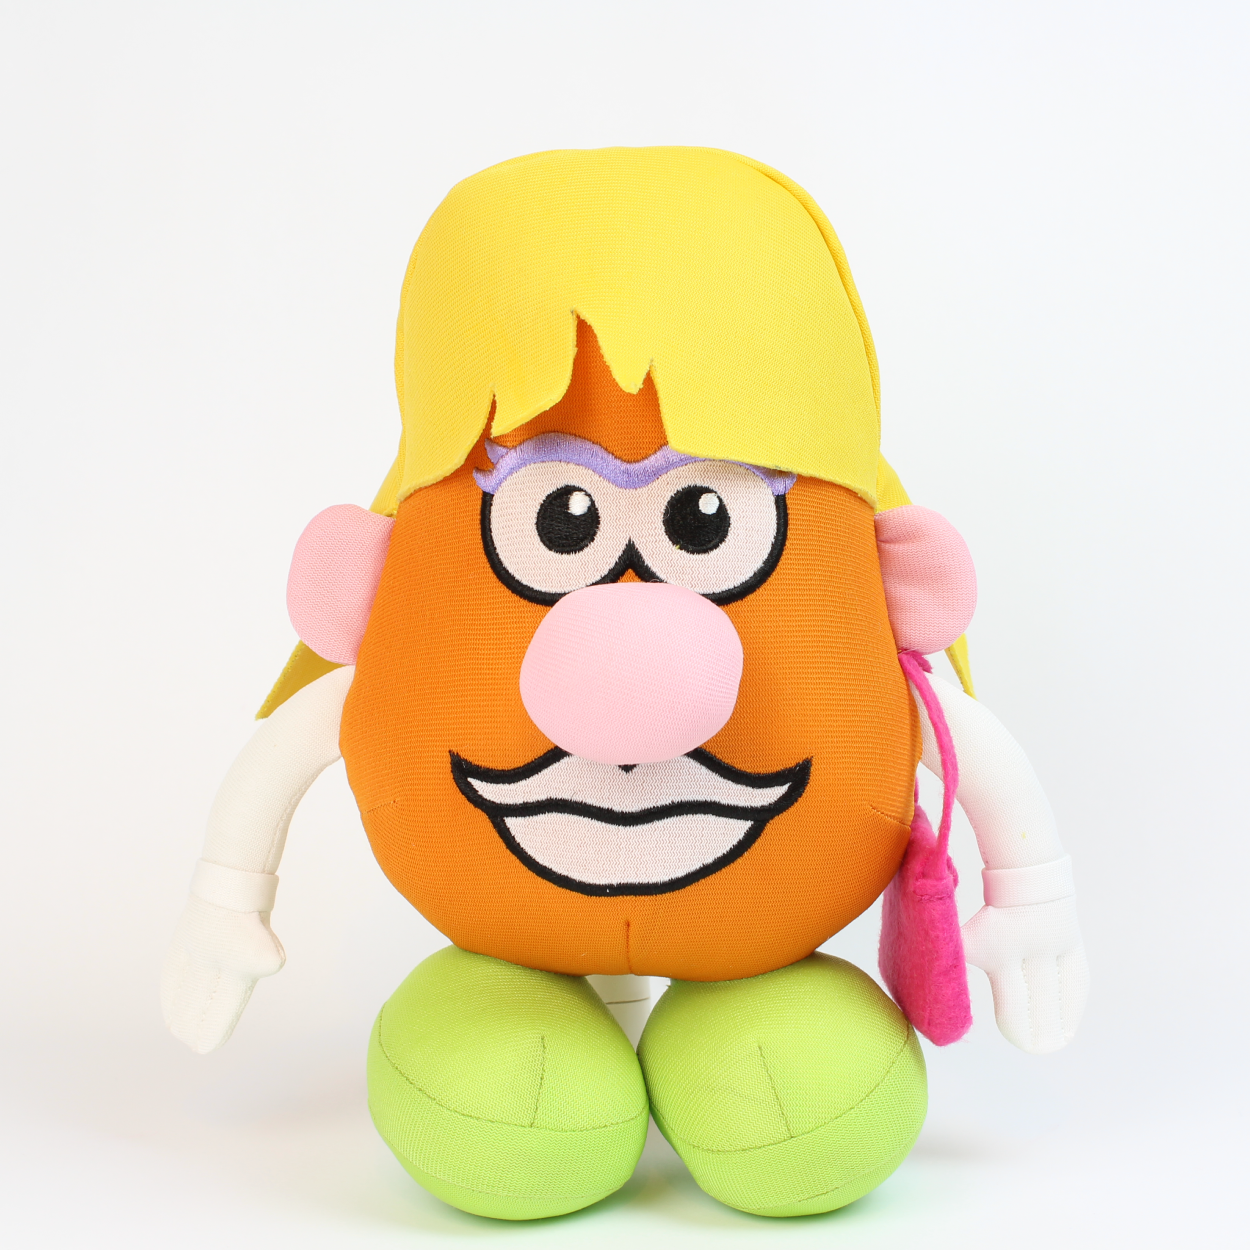 Mr and Mrs Potato Head-06.png